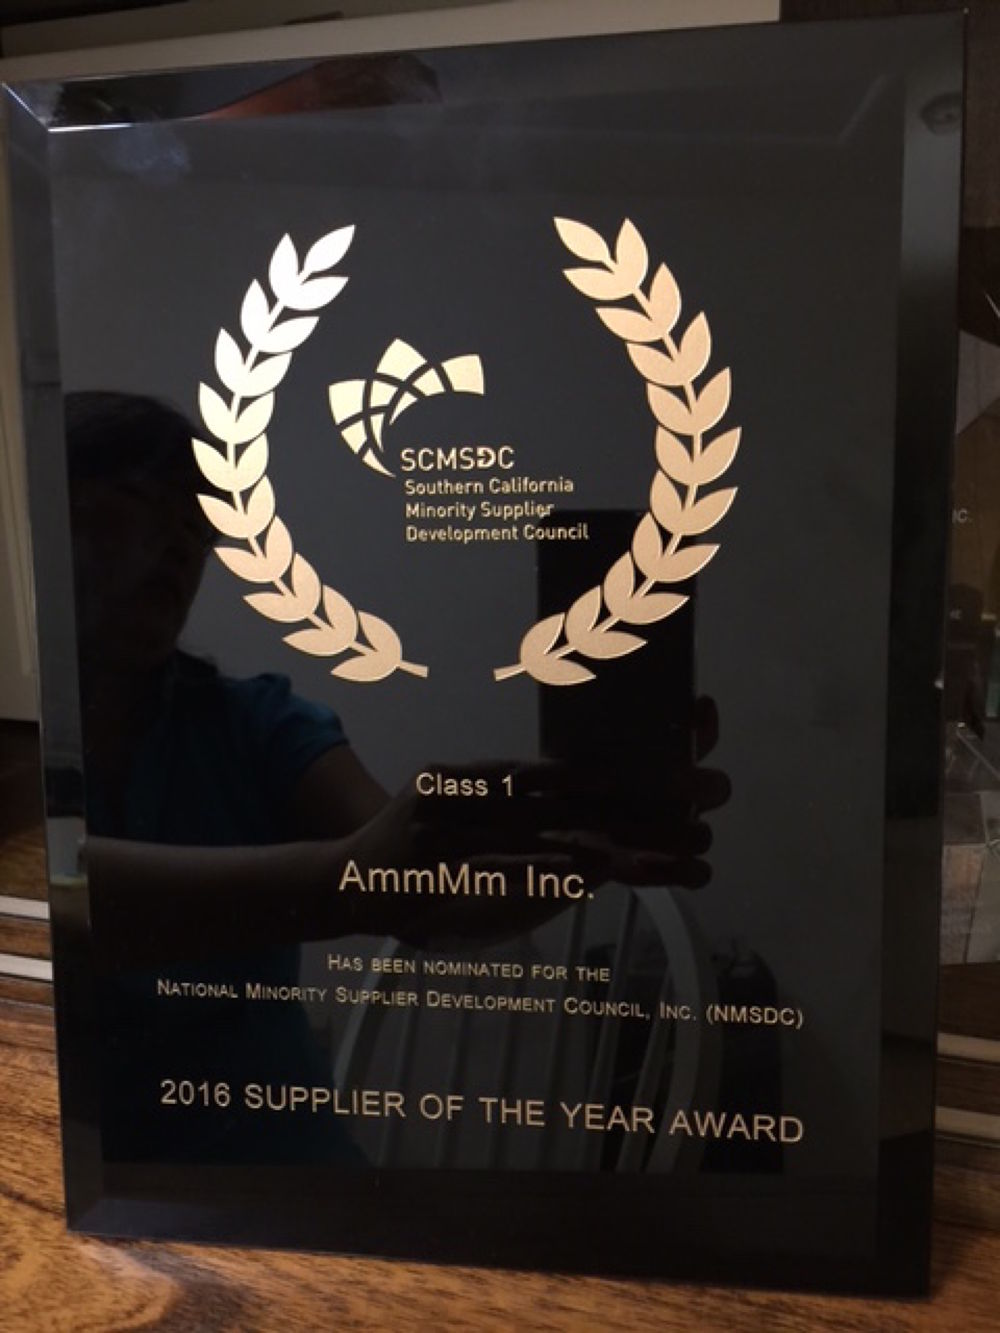 Southern California Minority Supplier Development Council's Supplier of the Year award